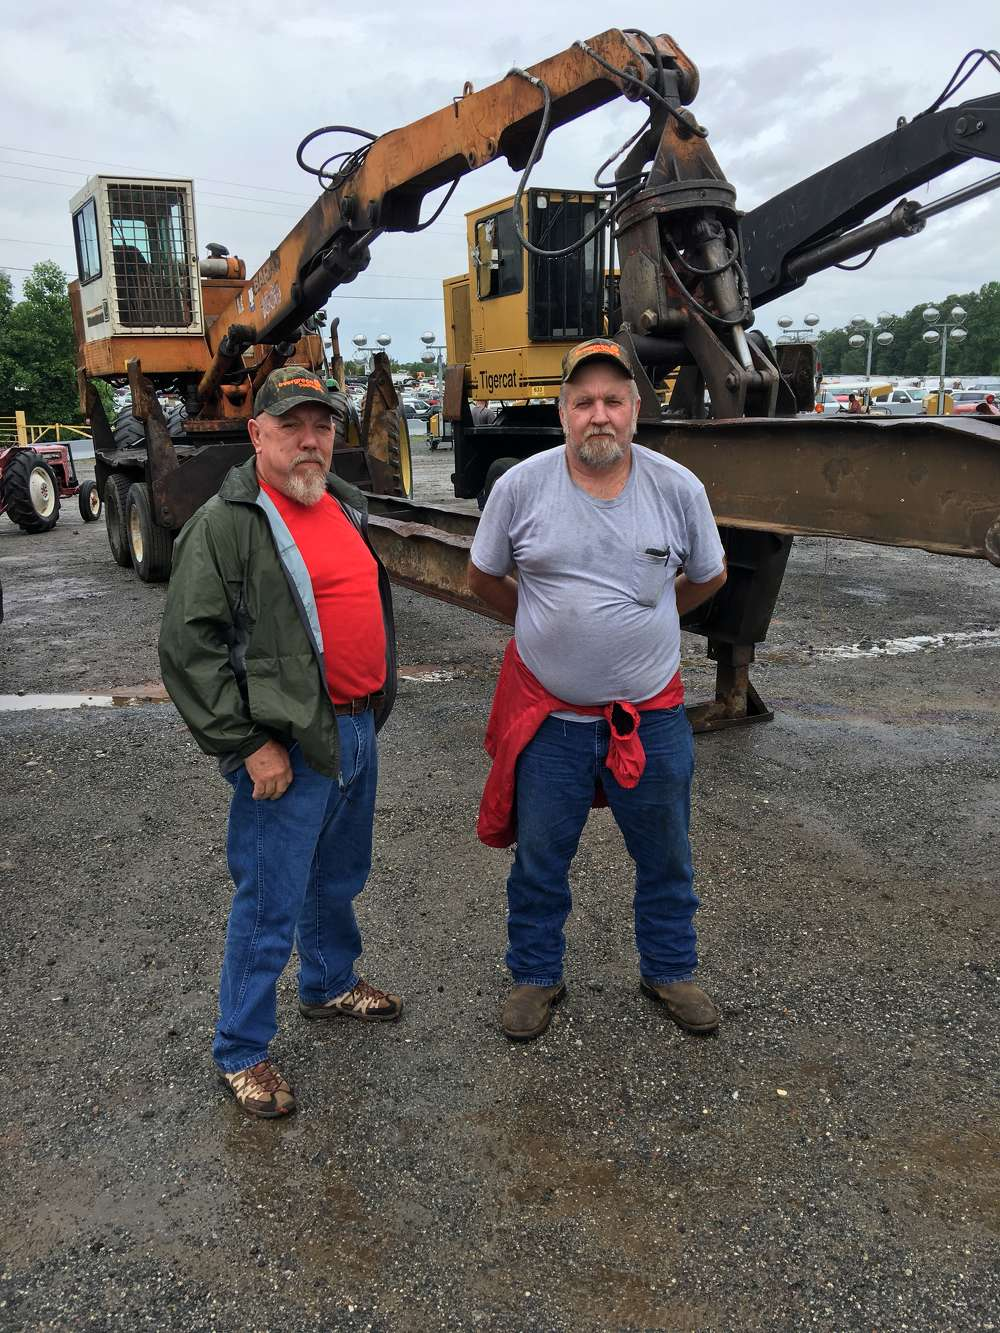 Hayward (L) and Jimmy Galloway, both of Galloway Logging & Excavating in Tuckasegee, N.C., looked over the logging machines and plan to bid on a few pieces.